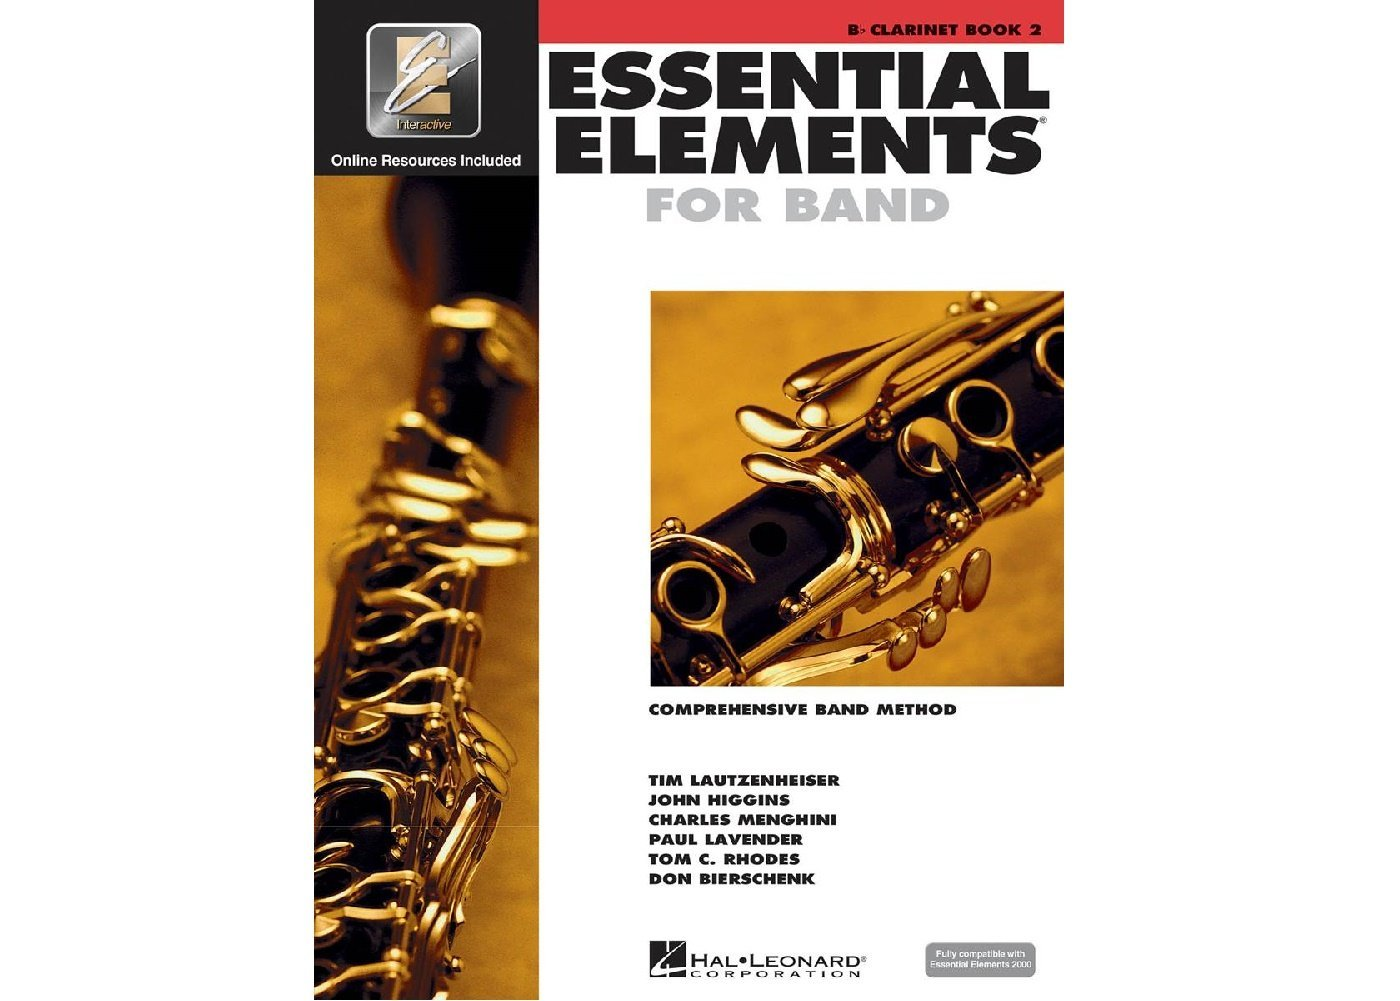 Essential Elements for Band Clarinet book 2